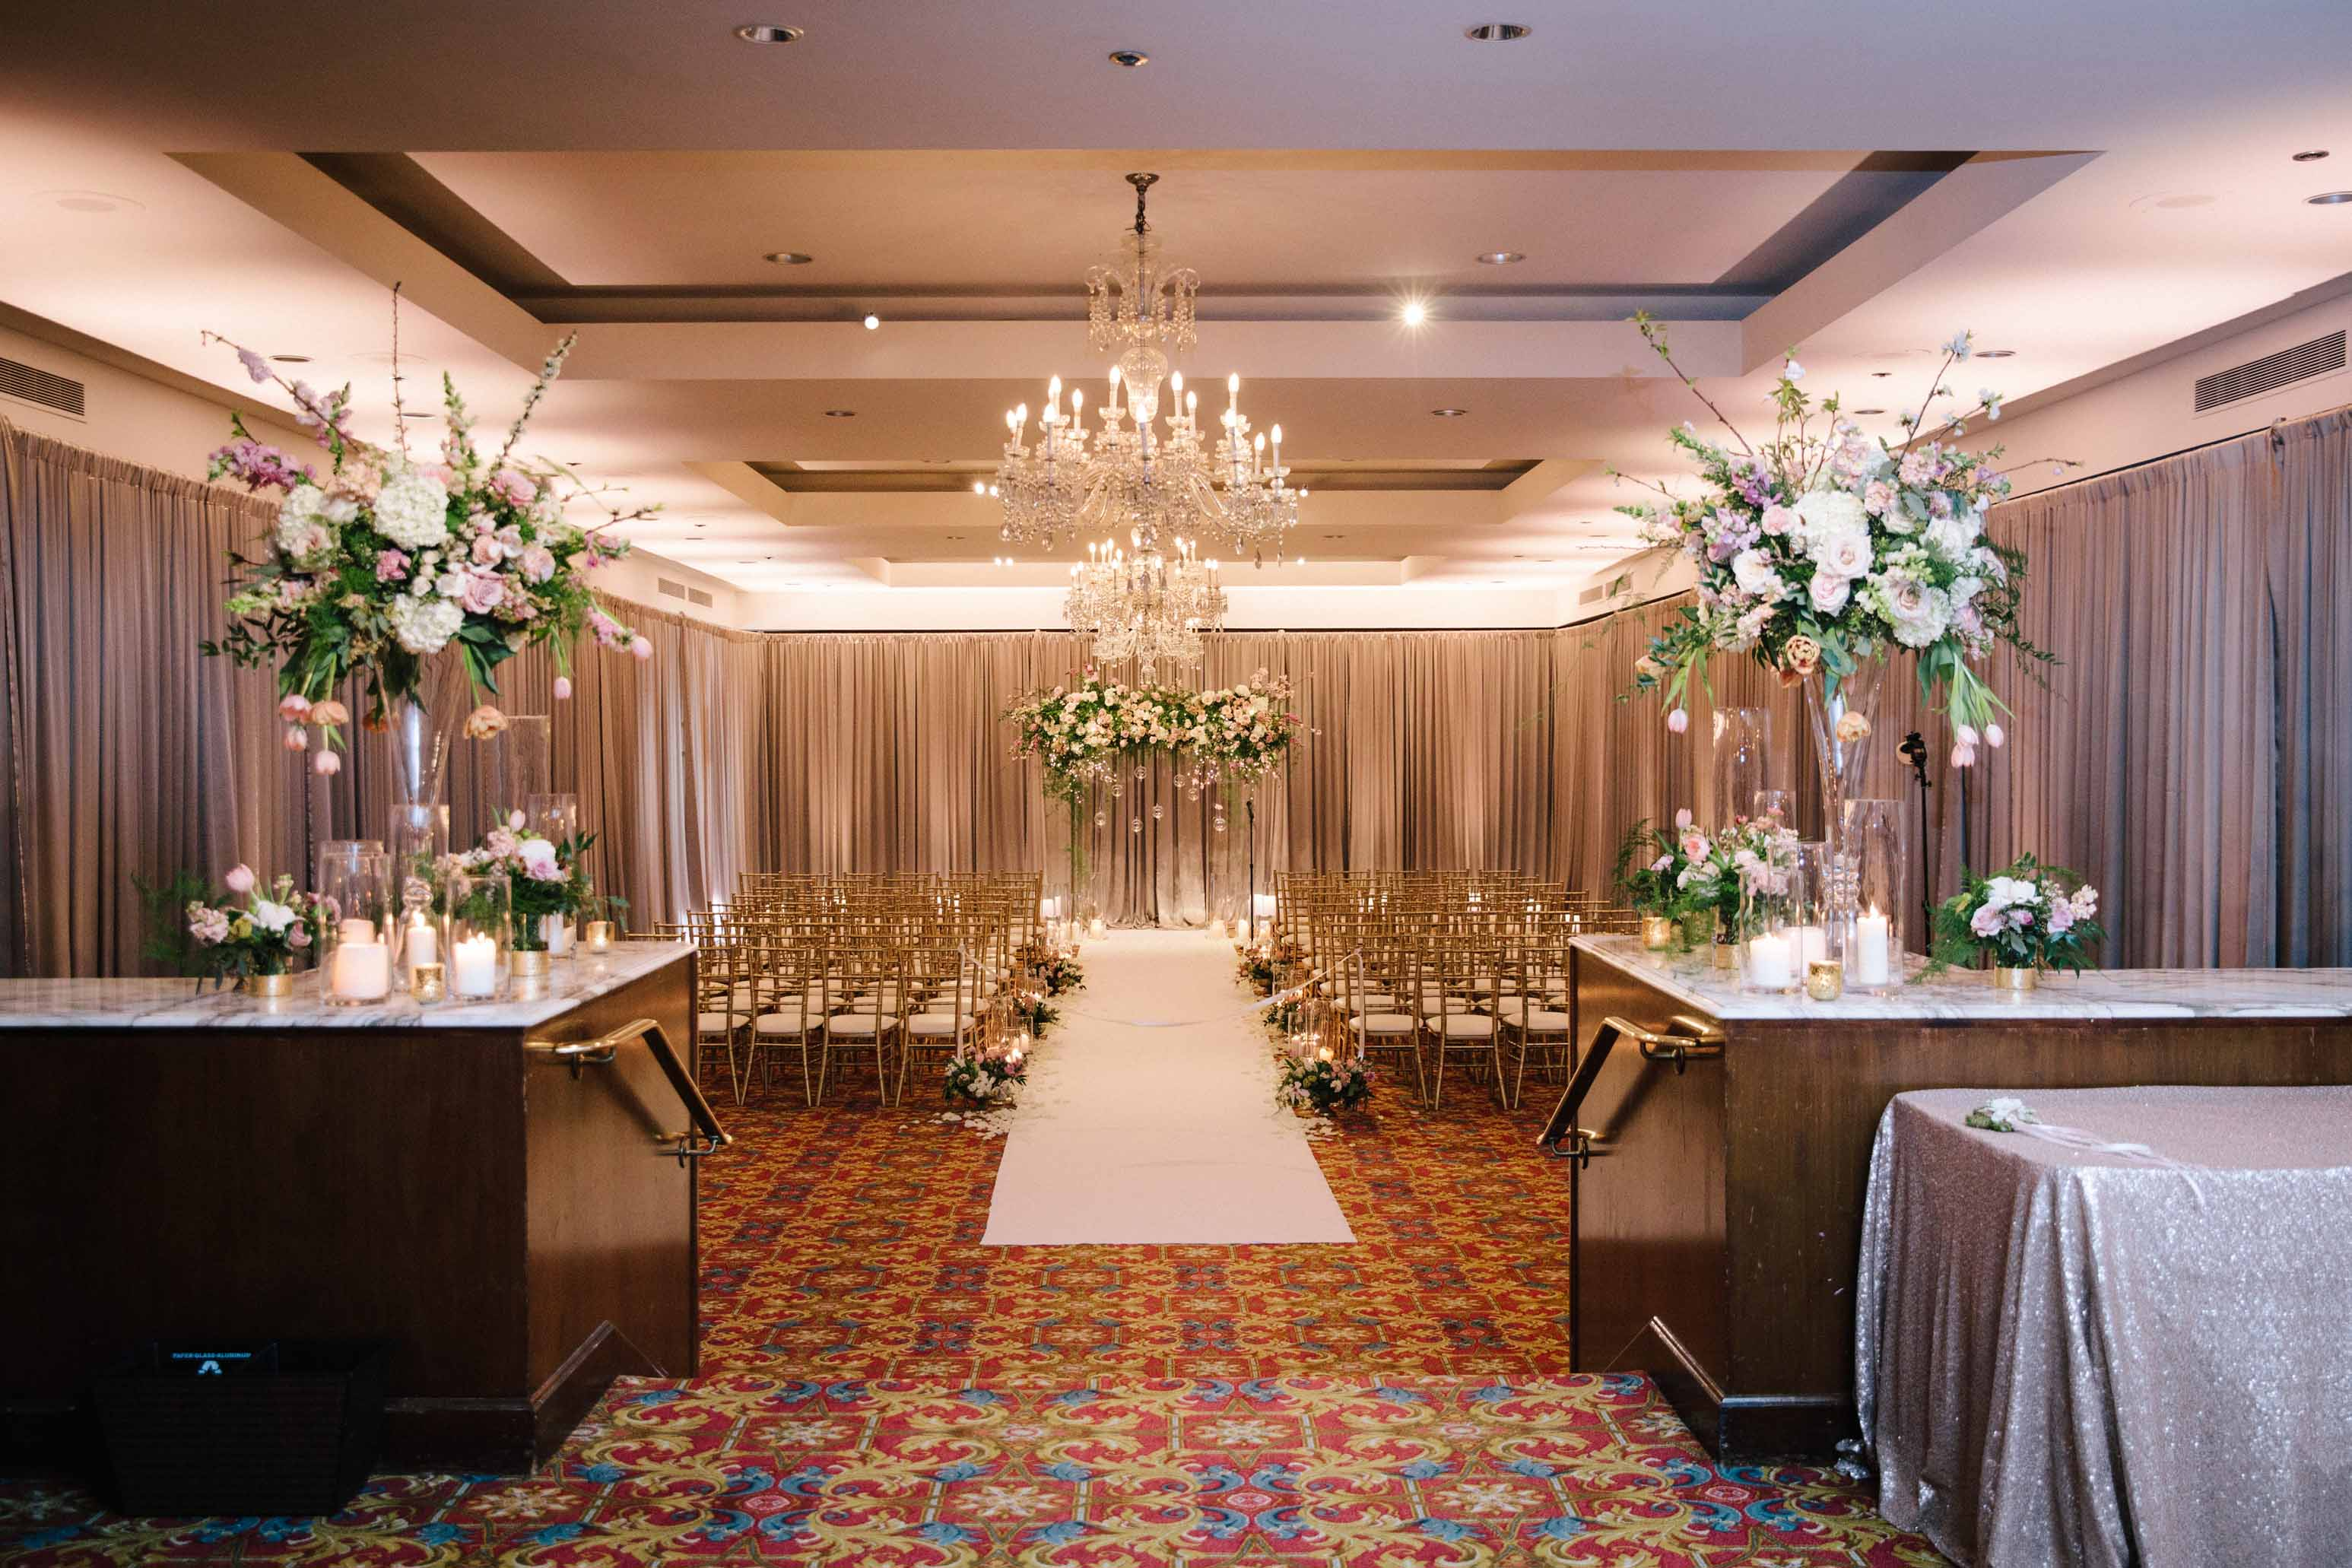 Wedding ceremony in hotel ballroom with ceremony arch, candles, and two large floral arrangements